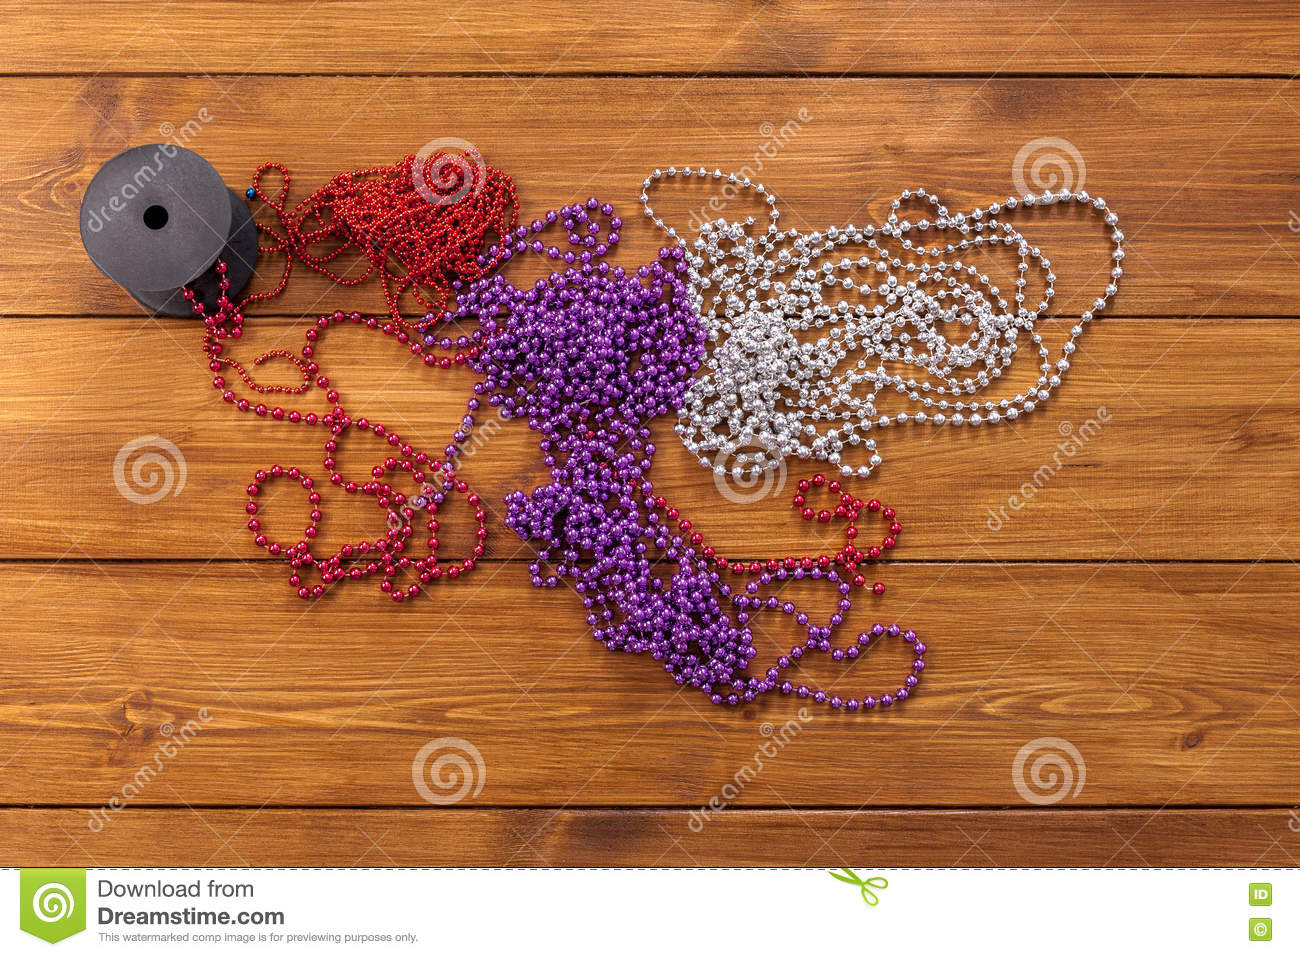 Christmas Bead Garland Decorations Prepare For Winter Holidays Background Stock Image Image Of Background Border 80321425